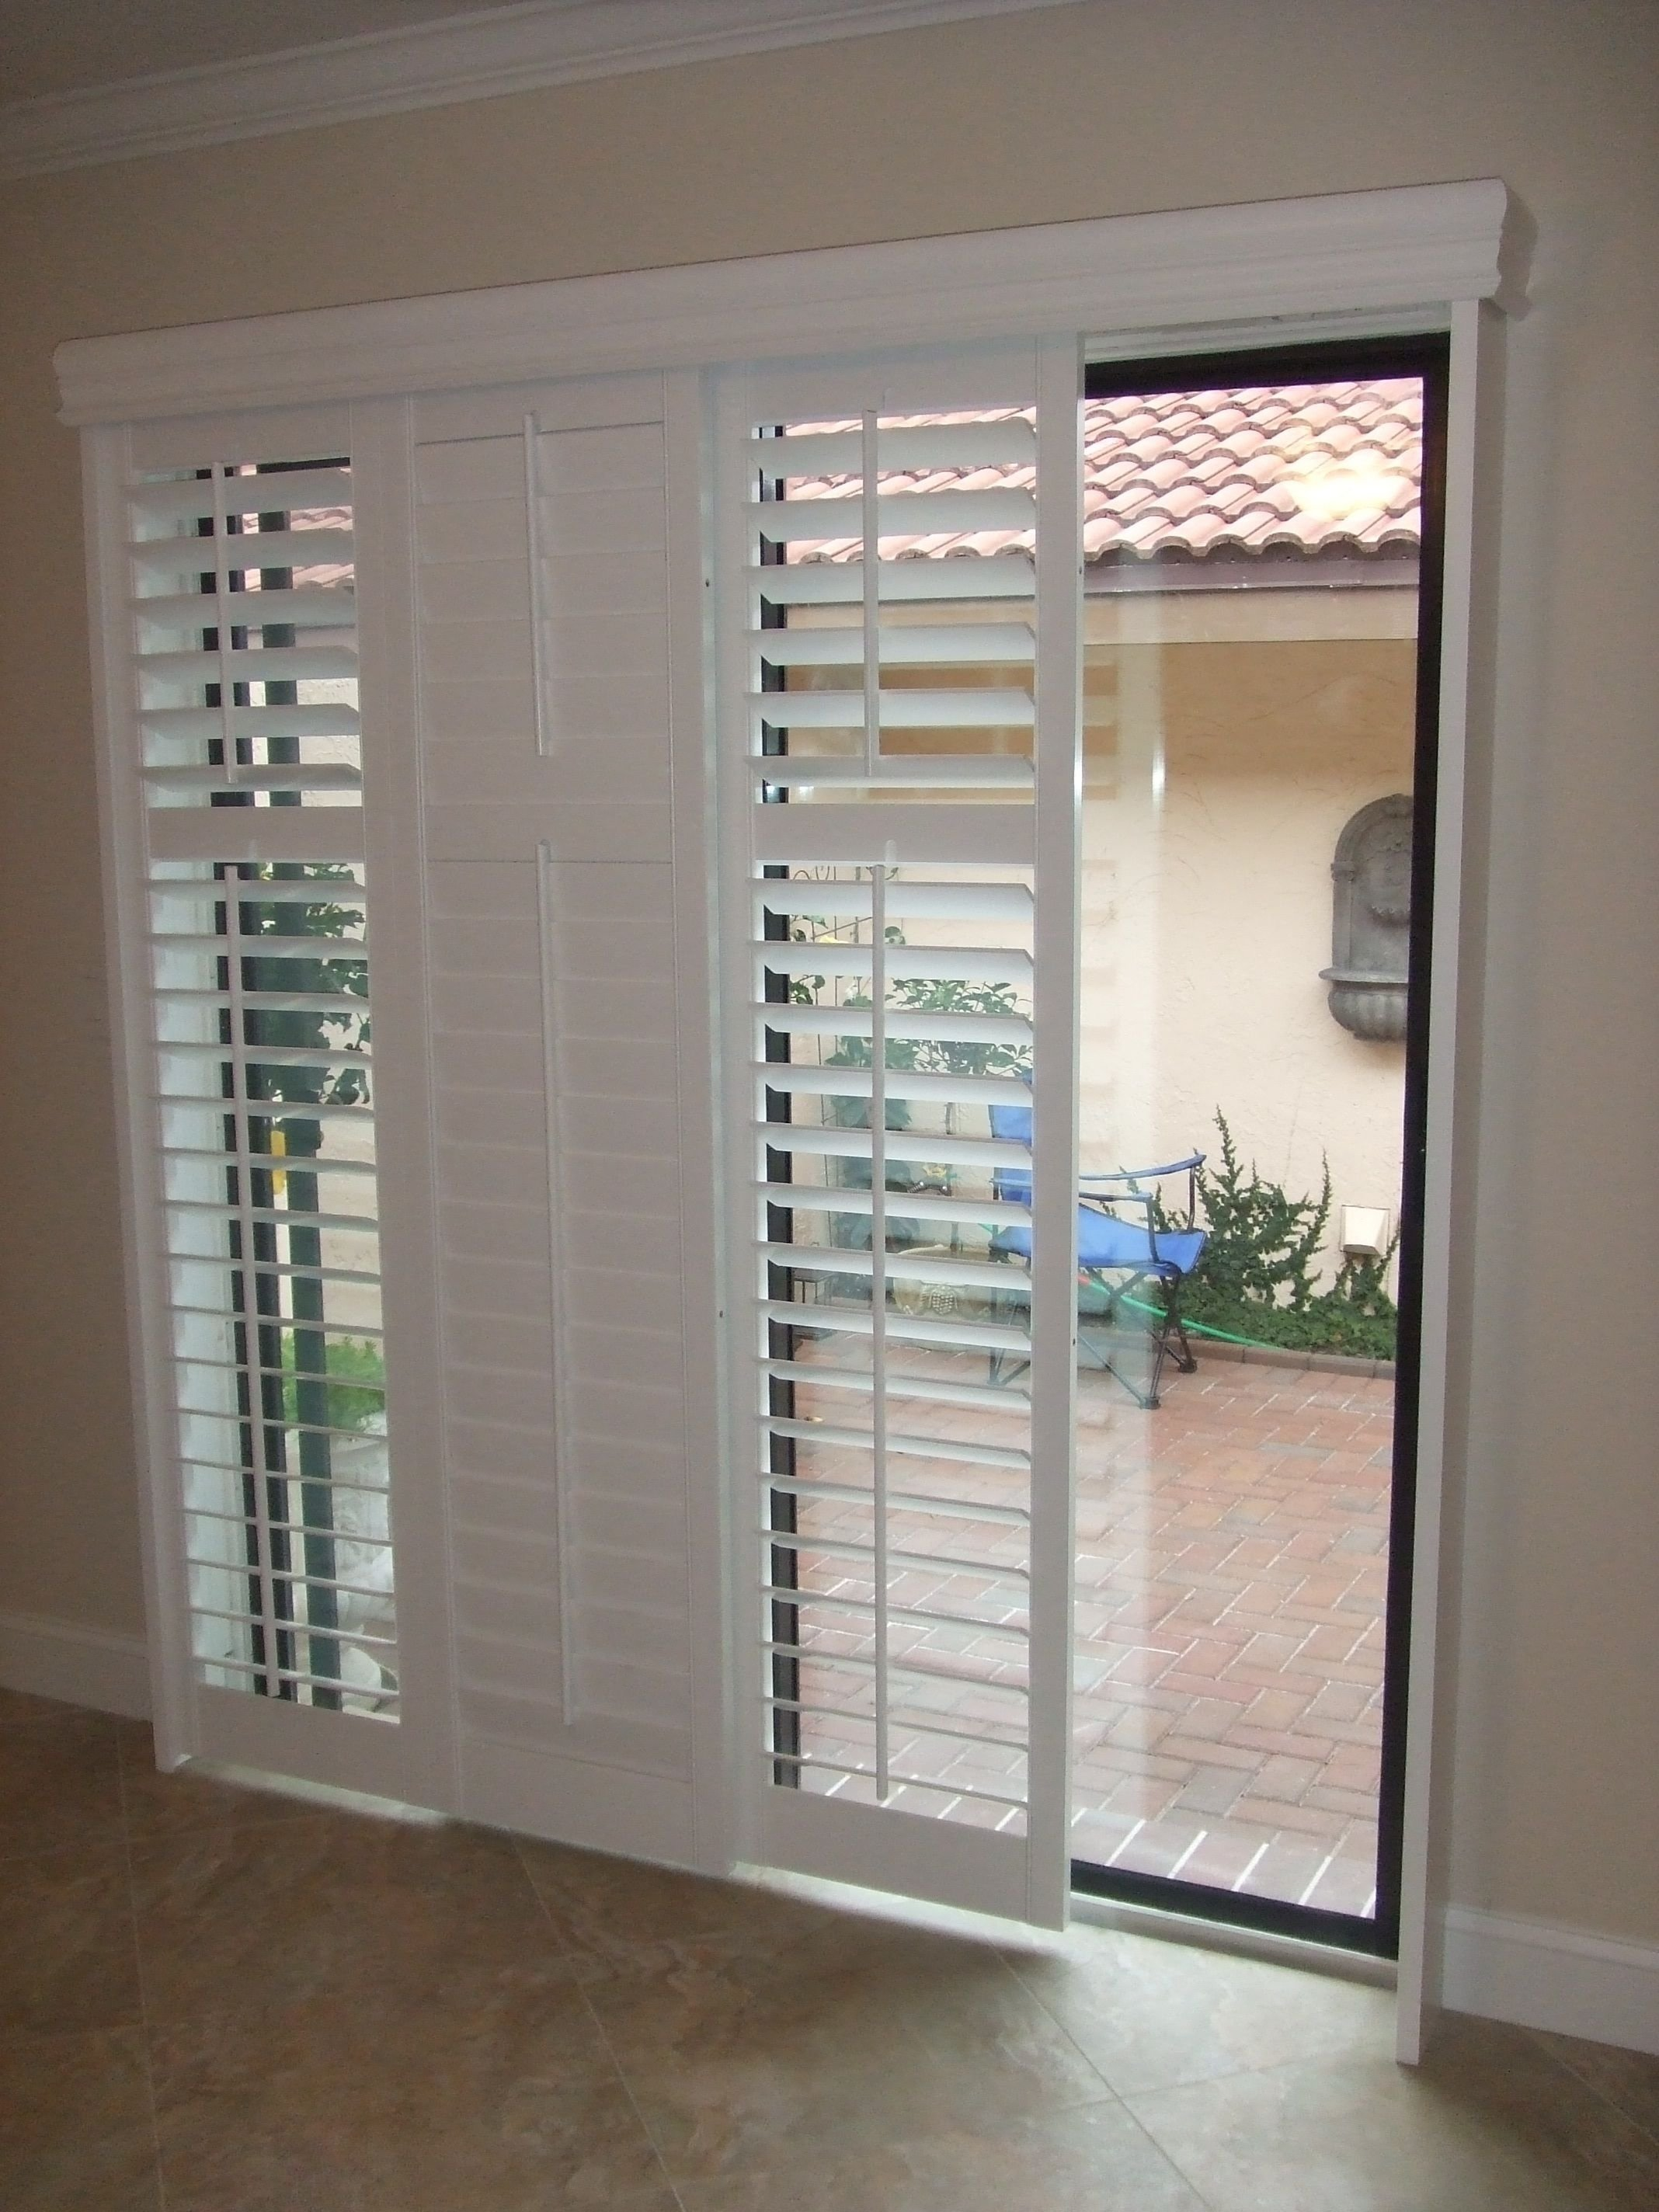 10 Beautiful Ideas For Sliding Glass Doors modernize your sliding glass door with sliding plantation shutters 1 2020